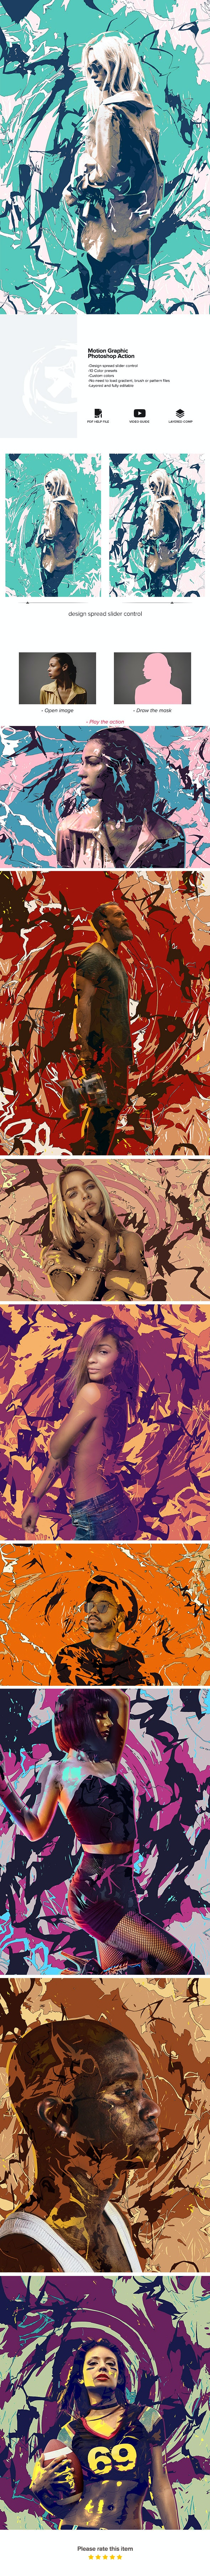 Motion Graphic Photoshop Action - Photo Effects Actions